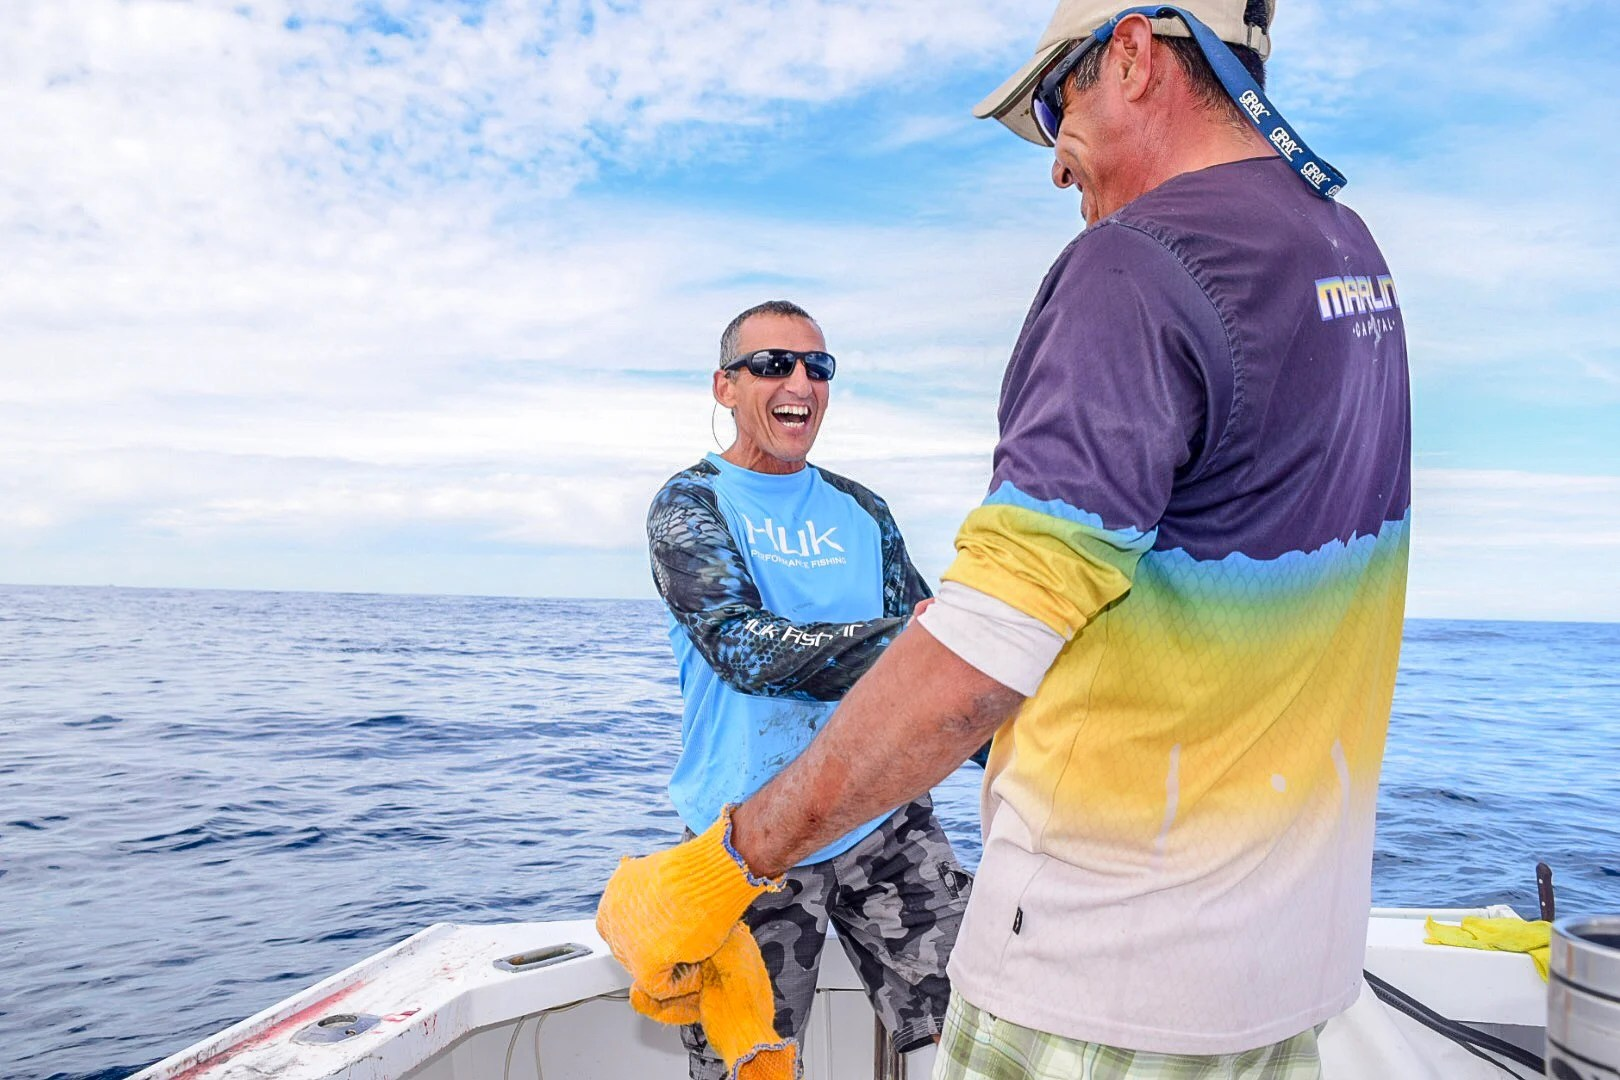 two excited anglers shaking hands after catching a fish